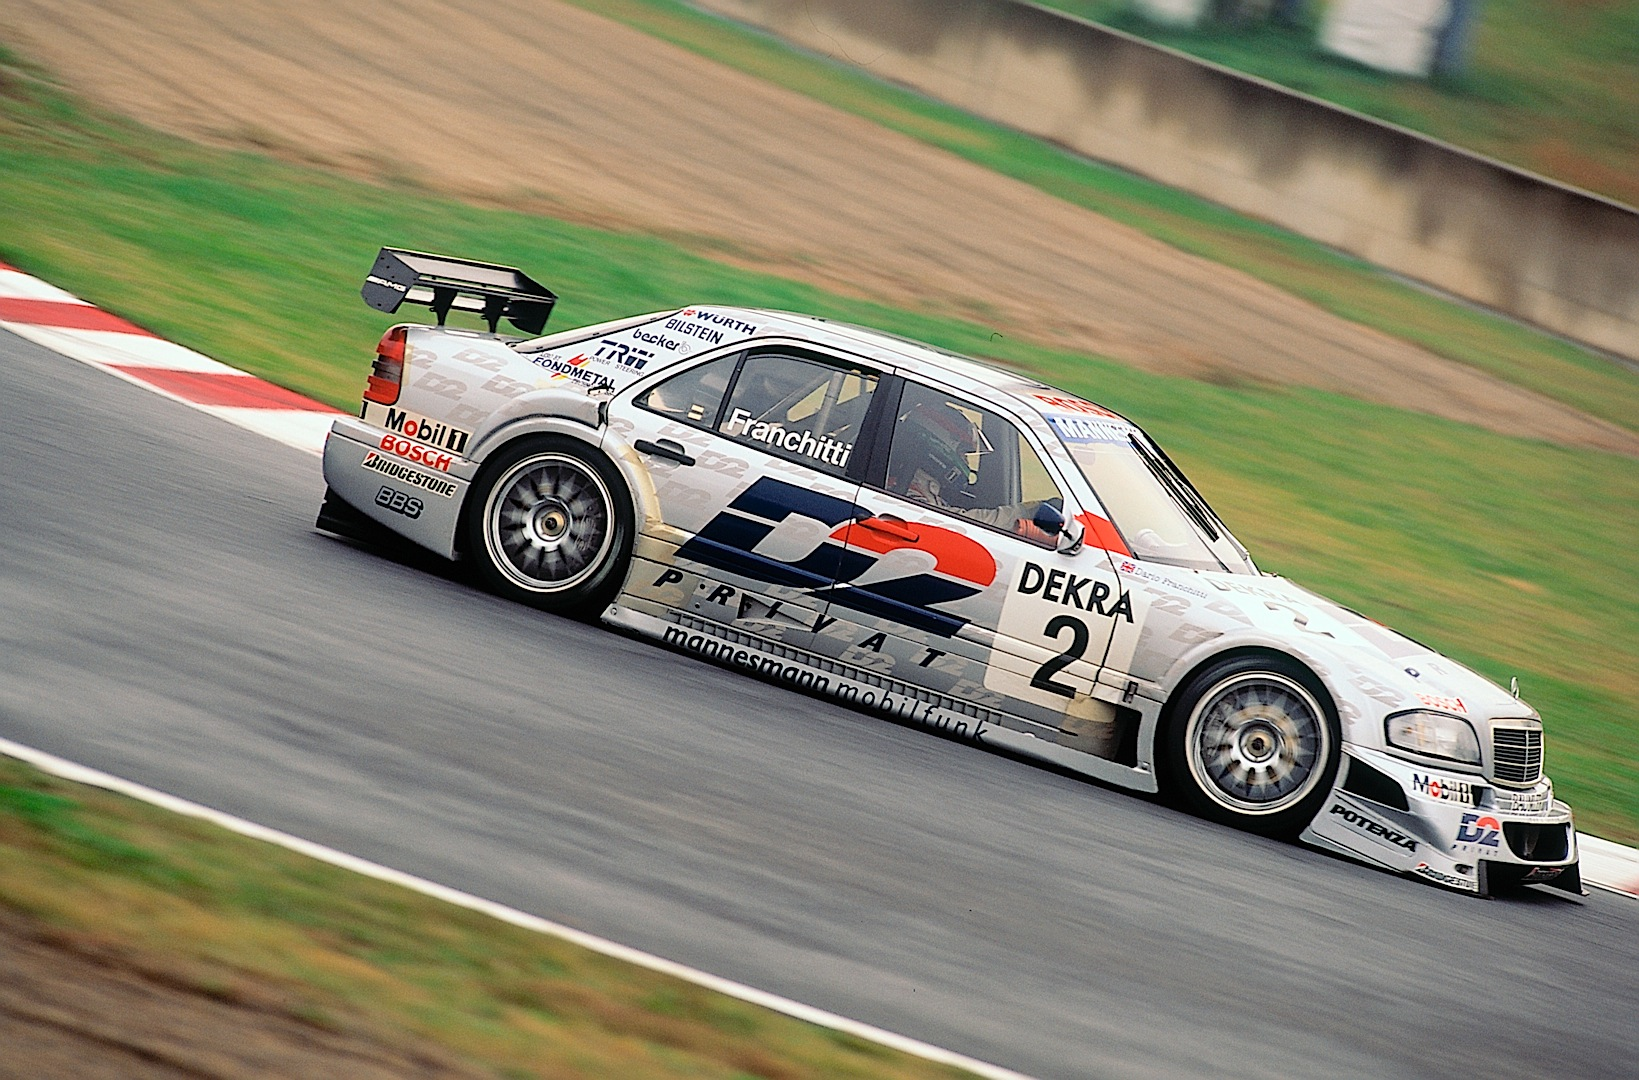 A Short History Of The Mercedes Benz C Class In Motorsport Photo Gallery on Mercedes Benz Autonomous Car